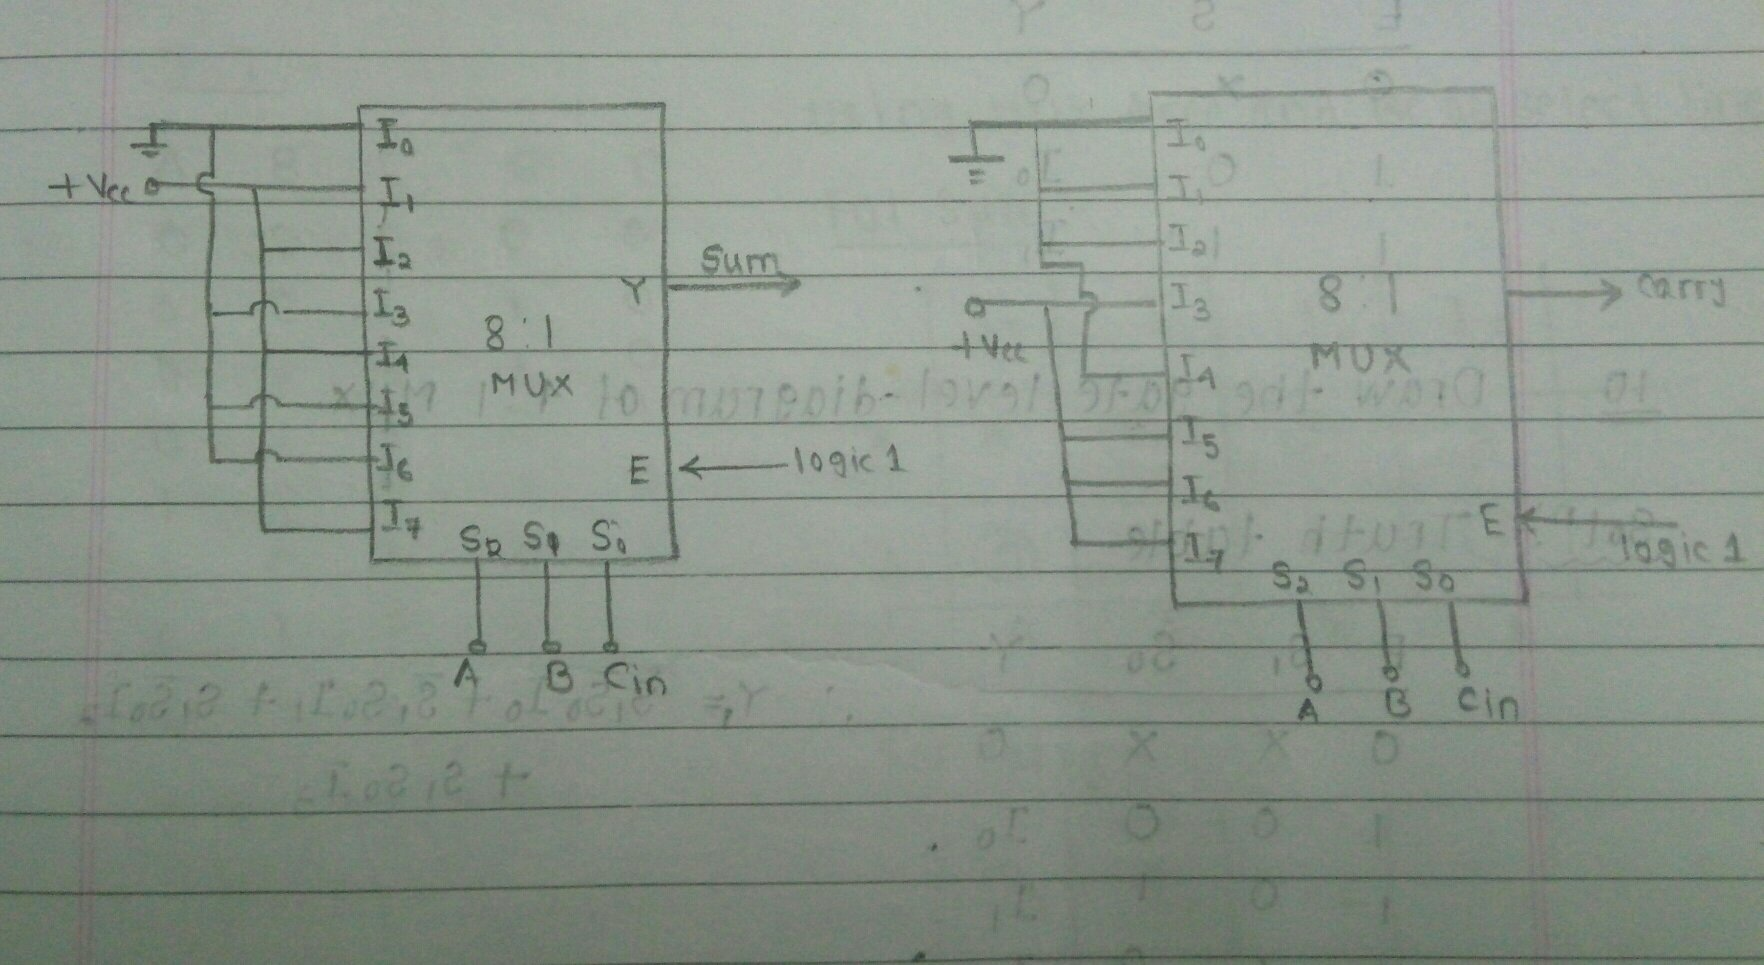 How Can We Implement Full Adder Using 81 Multiplexer Quora In Block Diagram Form The 2 Bit Looks Like This Be Done Directly Since Only Mux Needs To Usedit Just Plotting Sum And Carry Expression Of